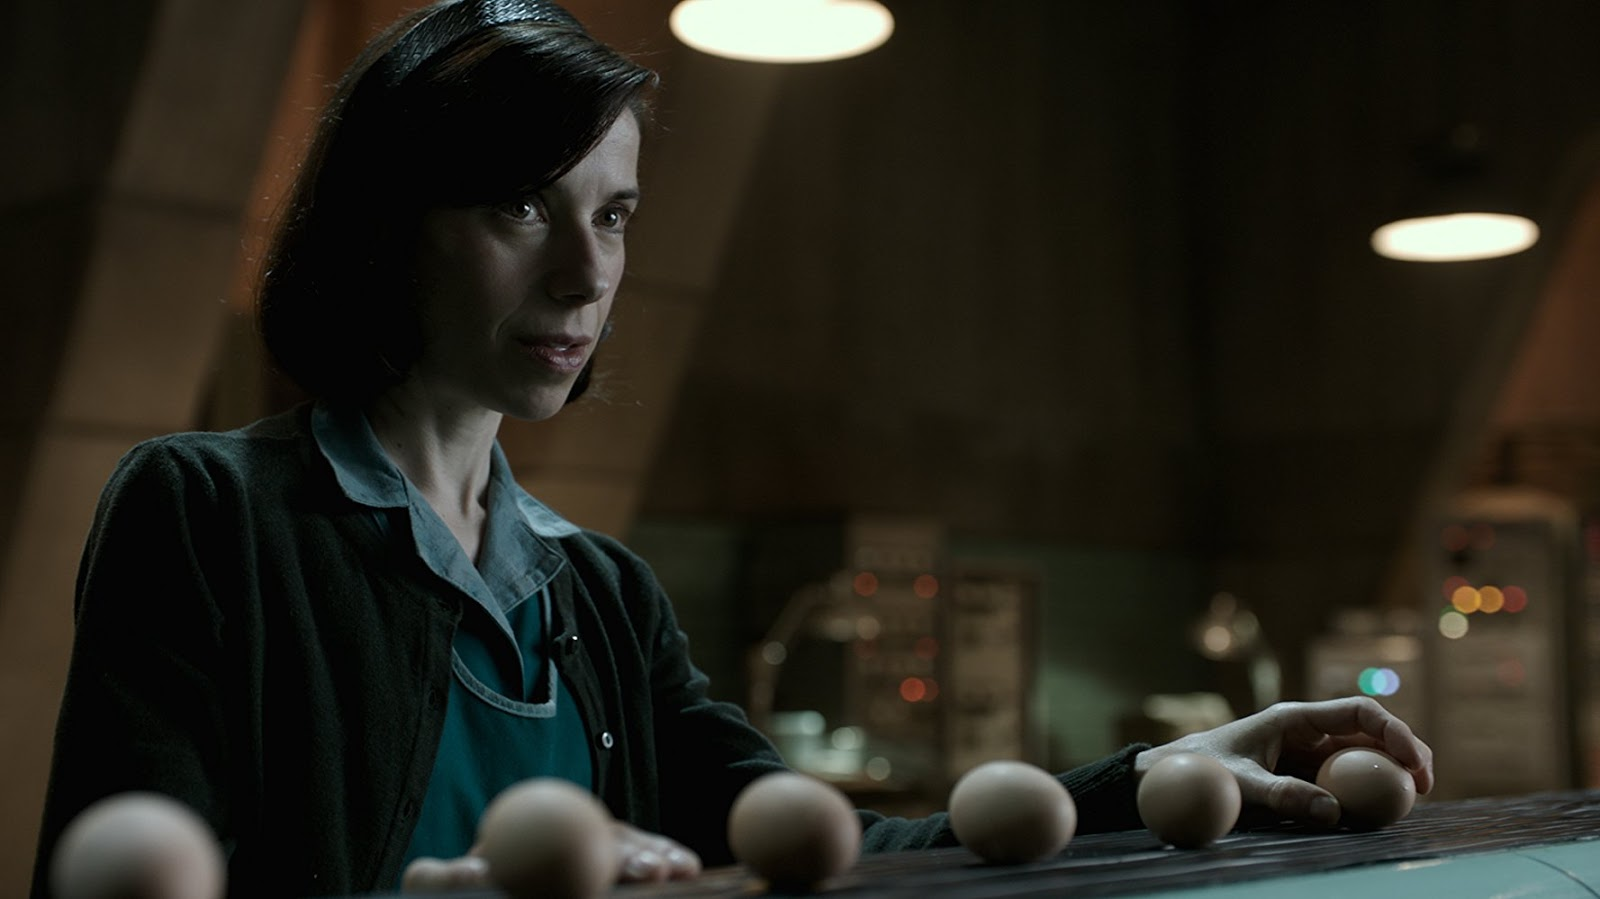 oscar 2018, cinema, movies, filmes, indicações oscar 2018, the shape of water, a forma da água, sally hawkins,